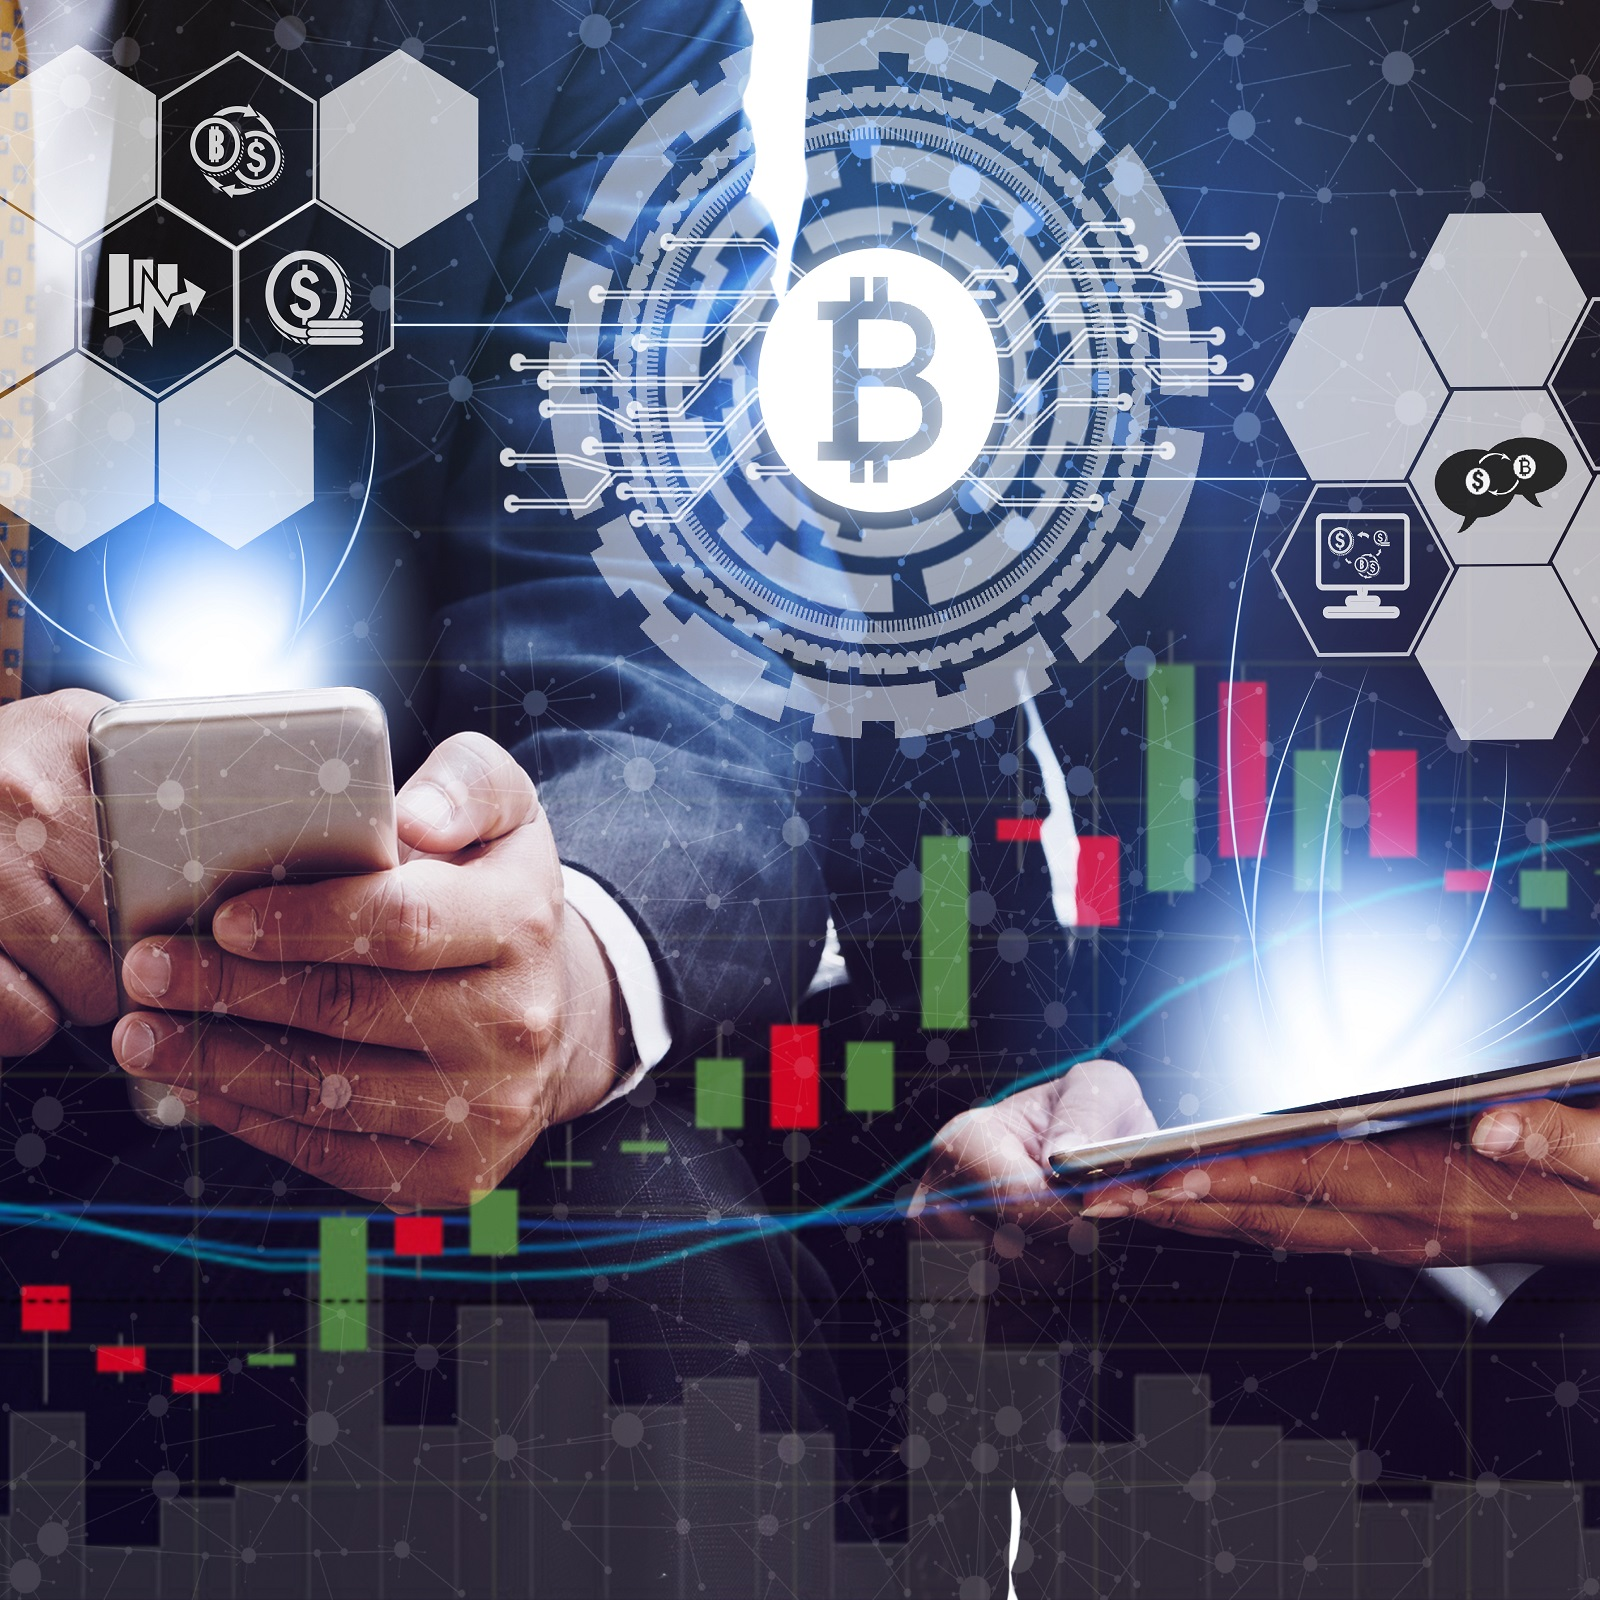 The Daly: Poloniex Offers Institutional Accounts, Okex Launches Perpetual Swap